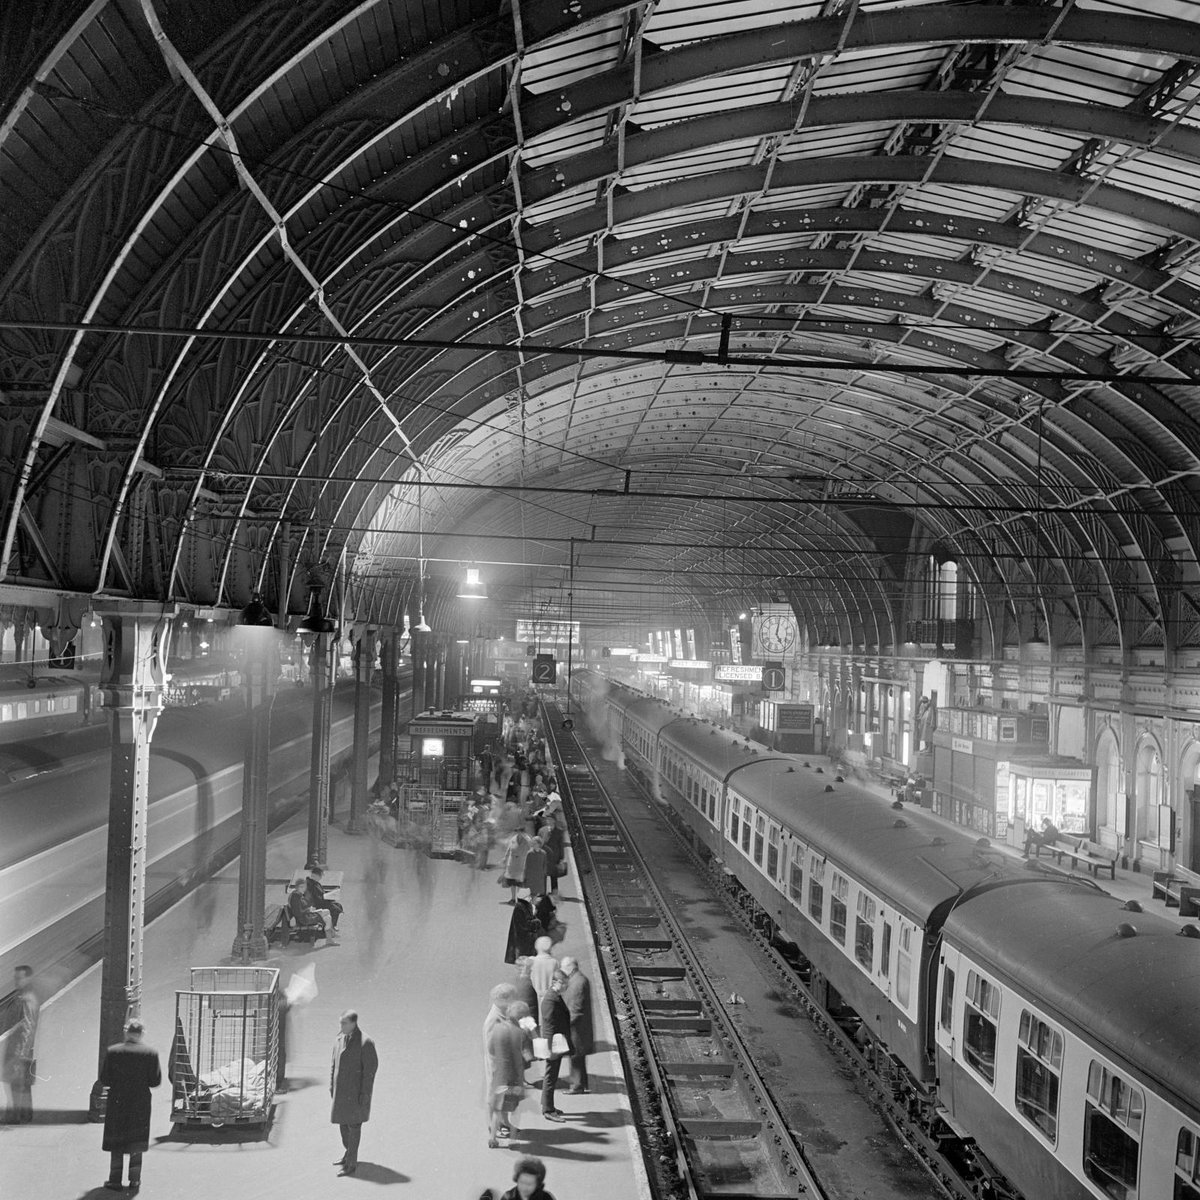 On this day in 1958 a book announced the arrival 'a friendly bear from deepest, darkest Peru' at Paddington Station https://t.co/PAs4YJOFJ3